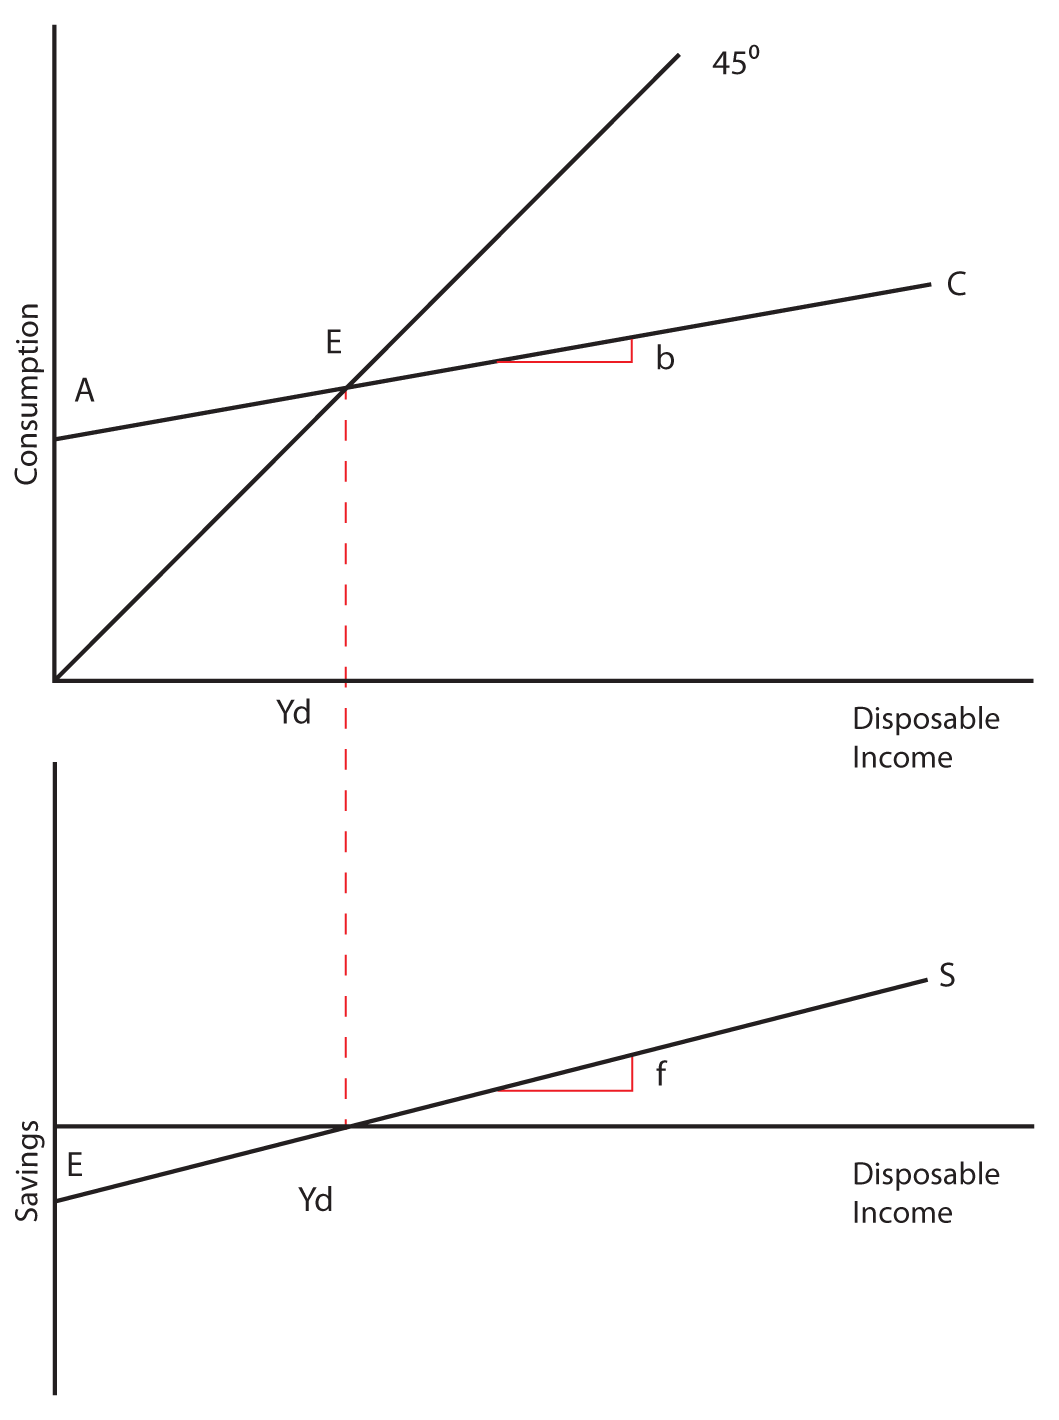 non linear consumption function